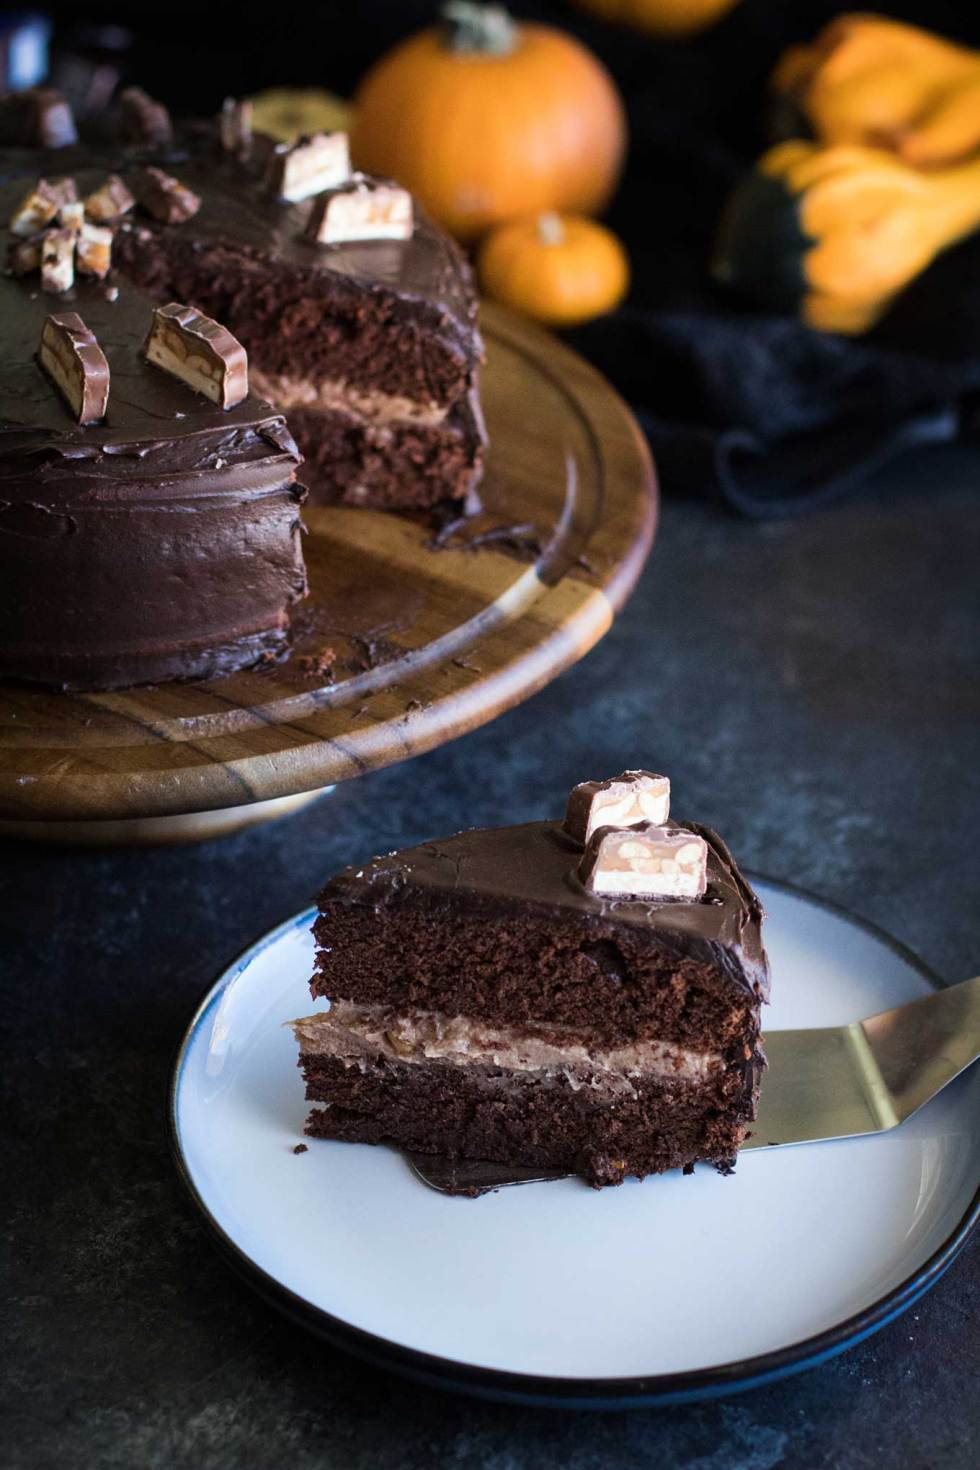 Snickers Cake - A rich chocolate cake with a melted down snickers filling and buttercream frosting. The perfect solution to leftover halloween candy.